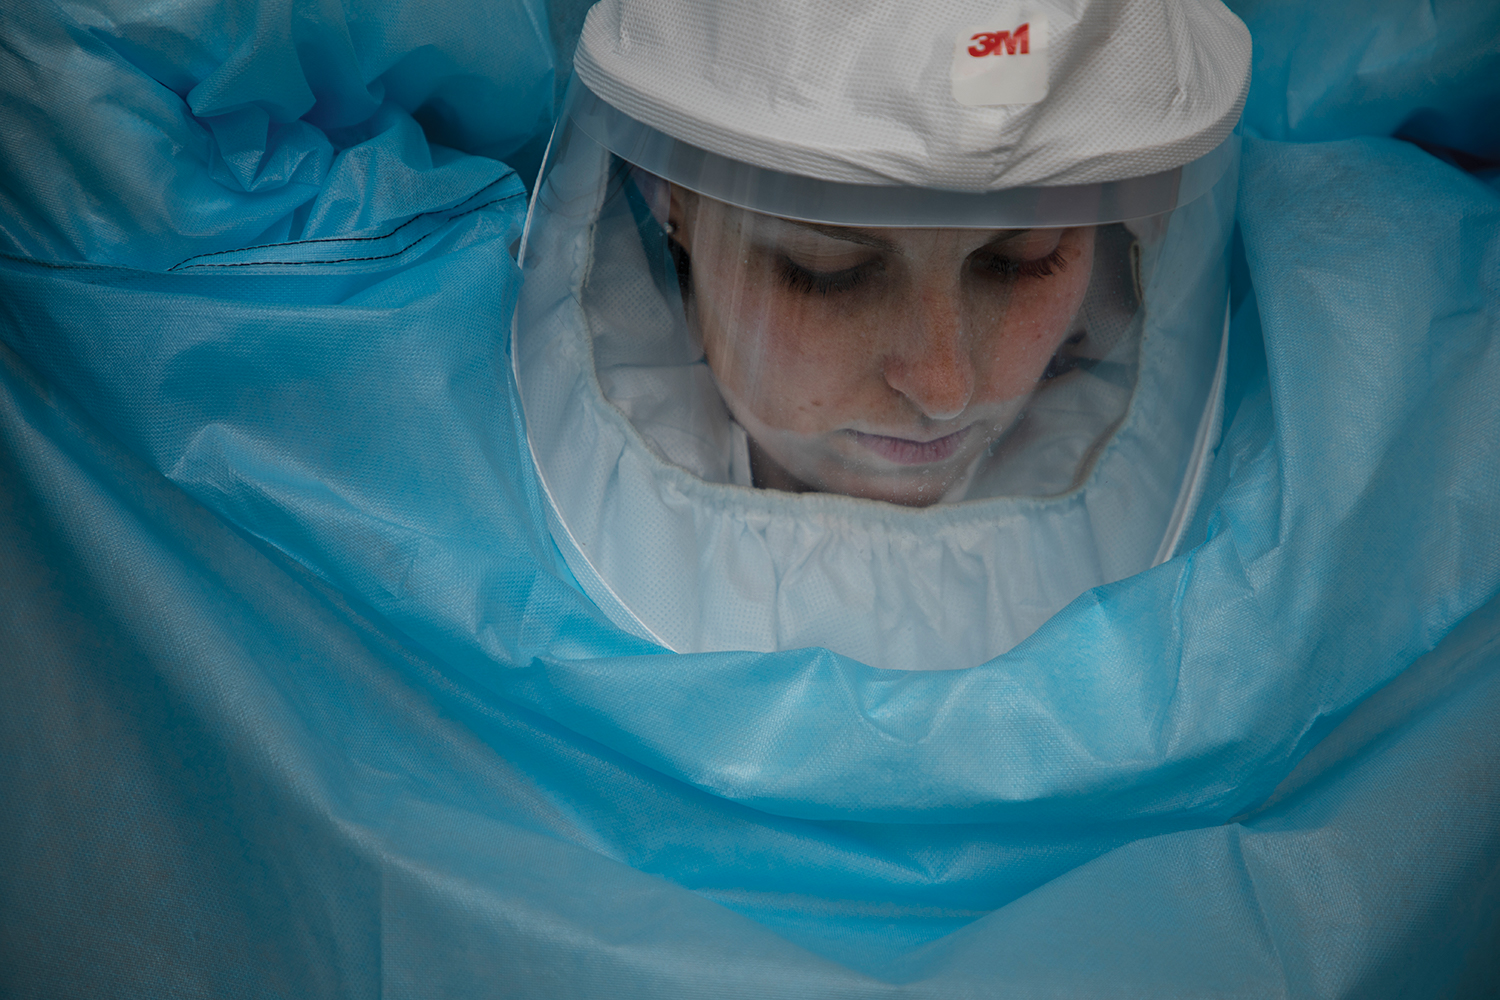 A researcher puts on their full N95 gear, complete with gown, face shield, and head gear.